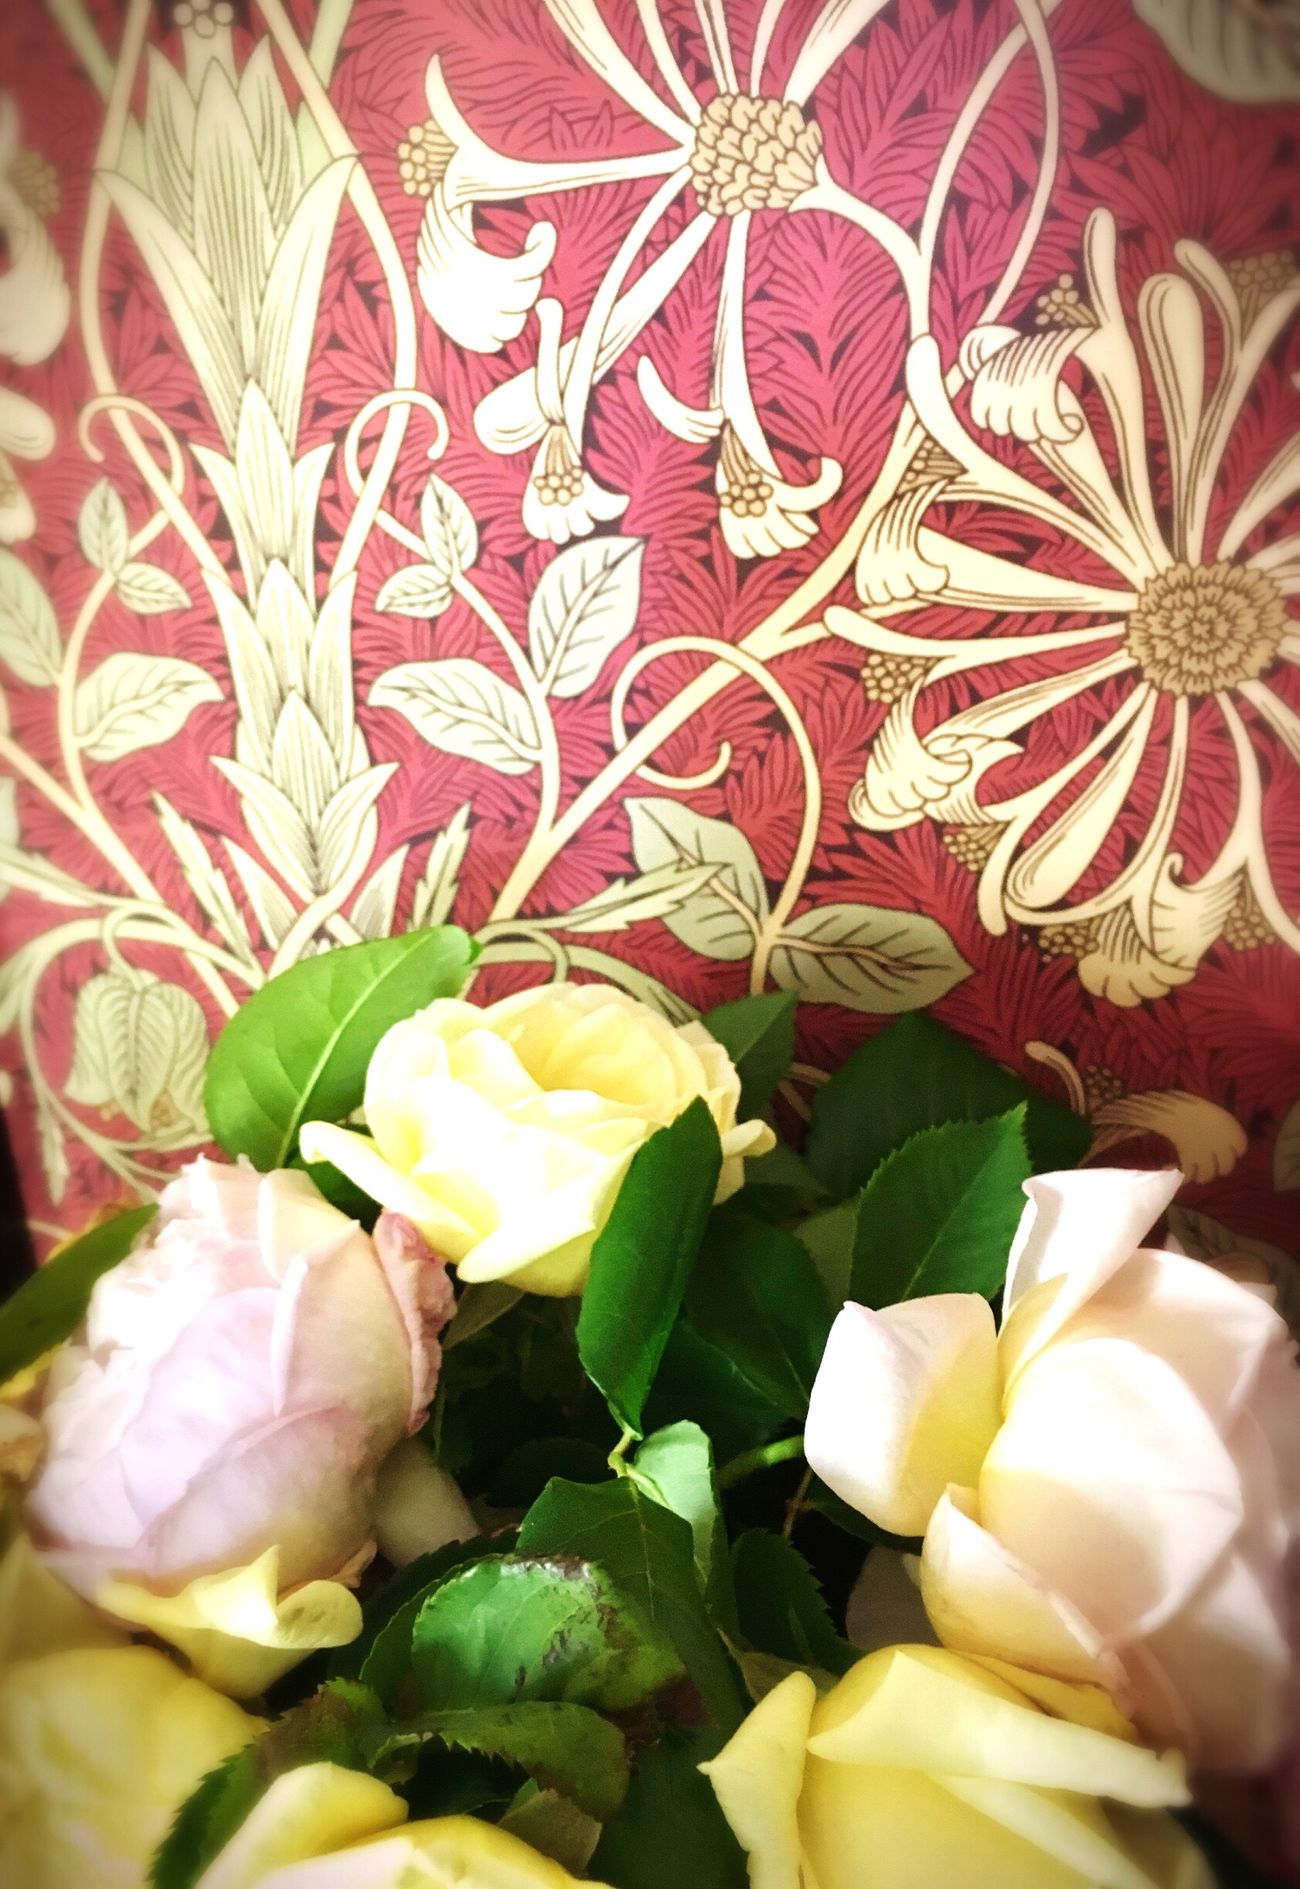 Roses Honeysuckle And Tulips Wallpaper William Morris